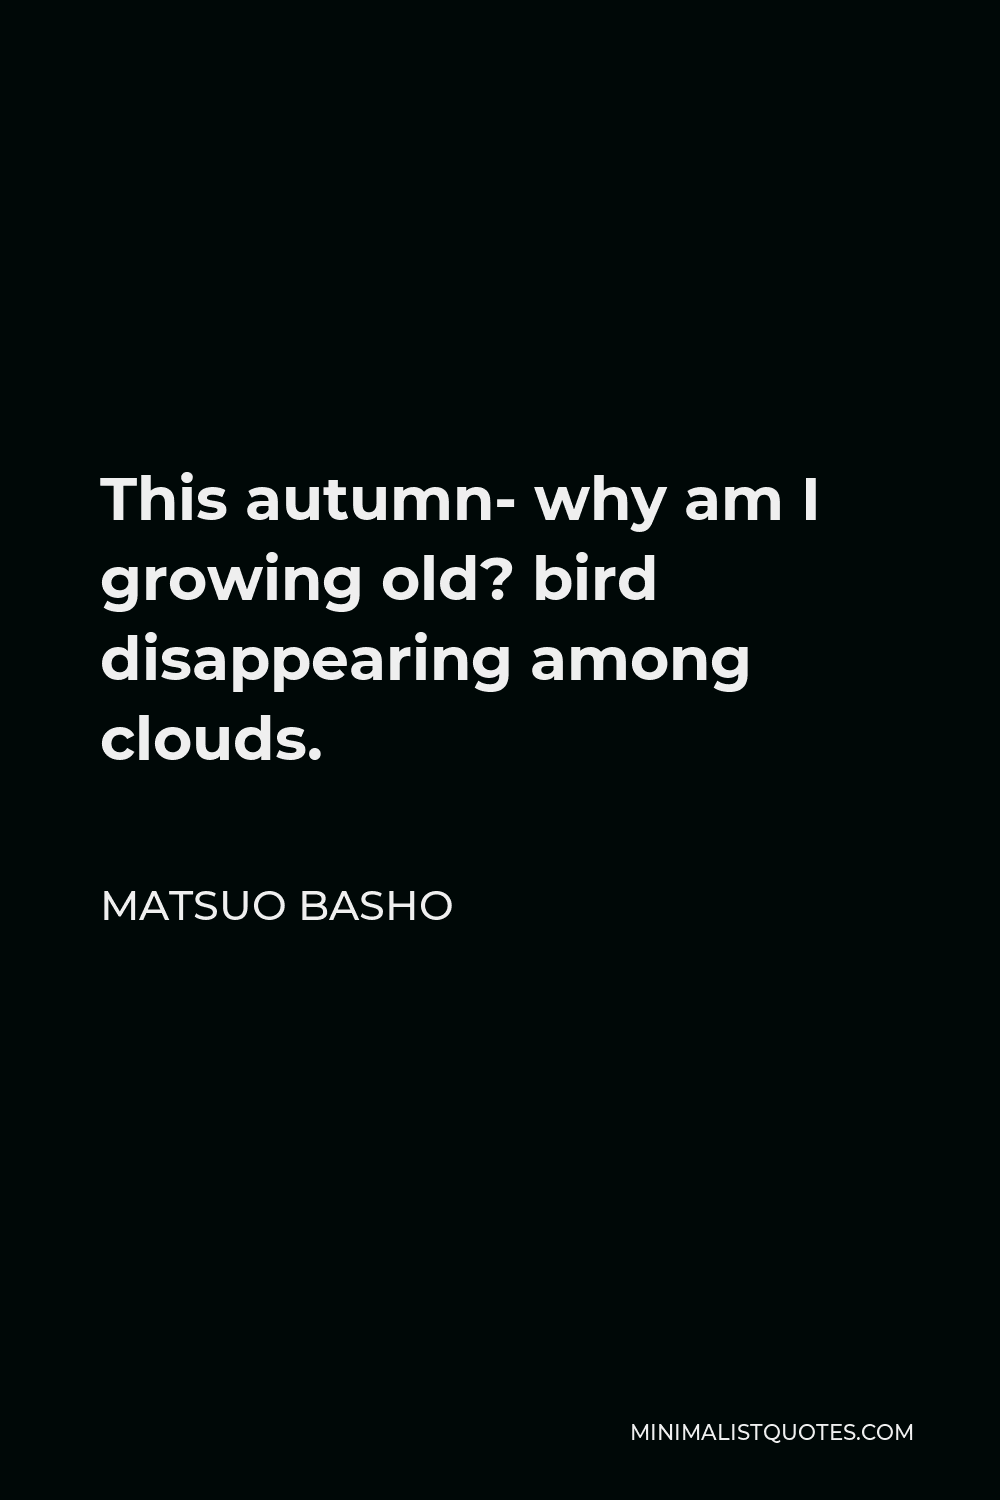 Matsuo Basho Quote - This autumn- why am I growing old? bird disappearing among clouds.